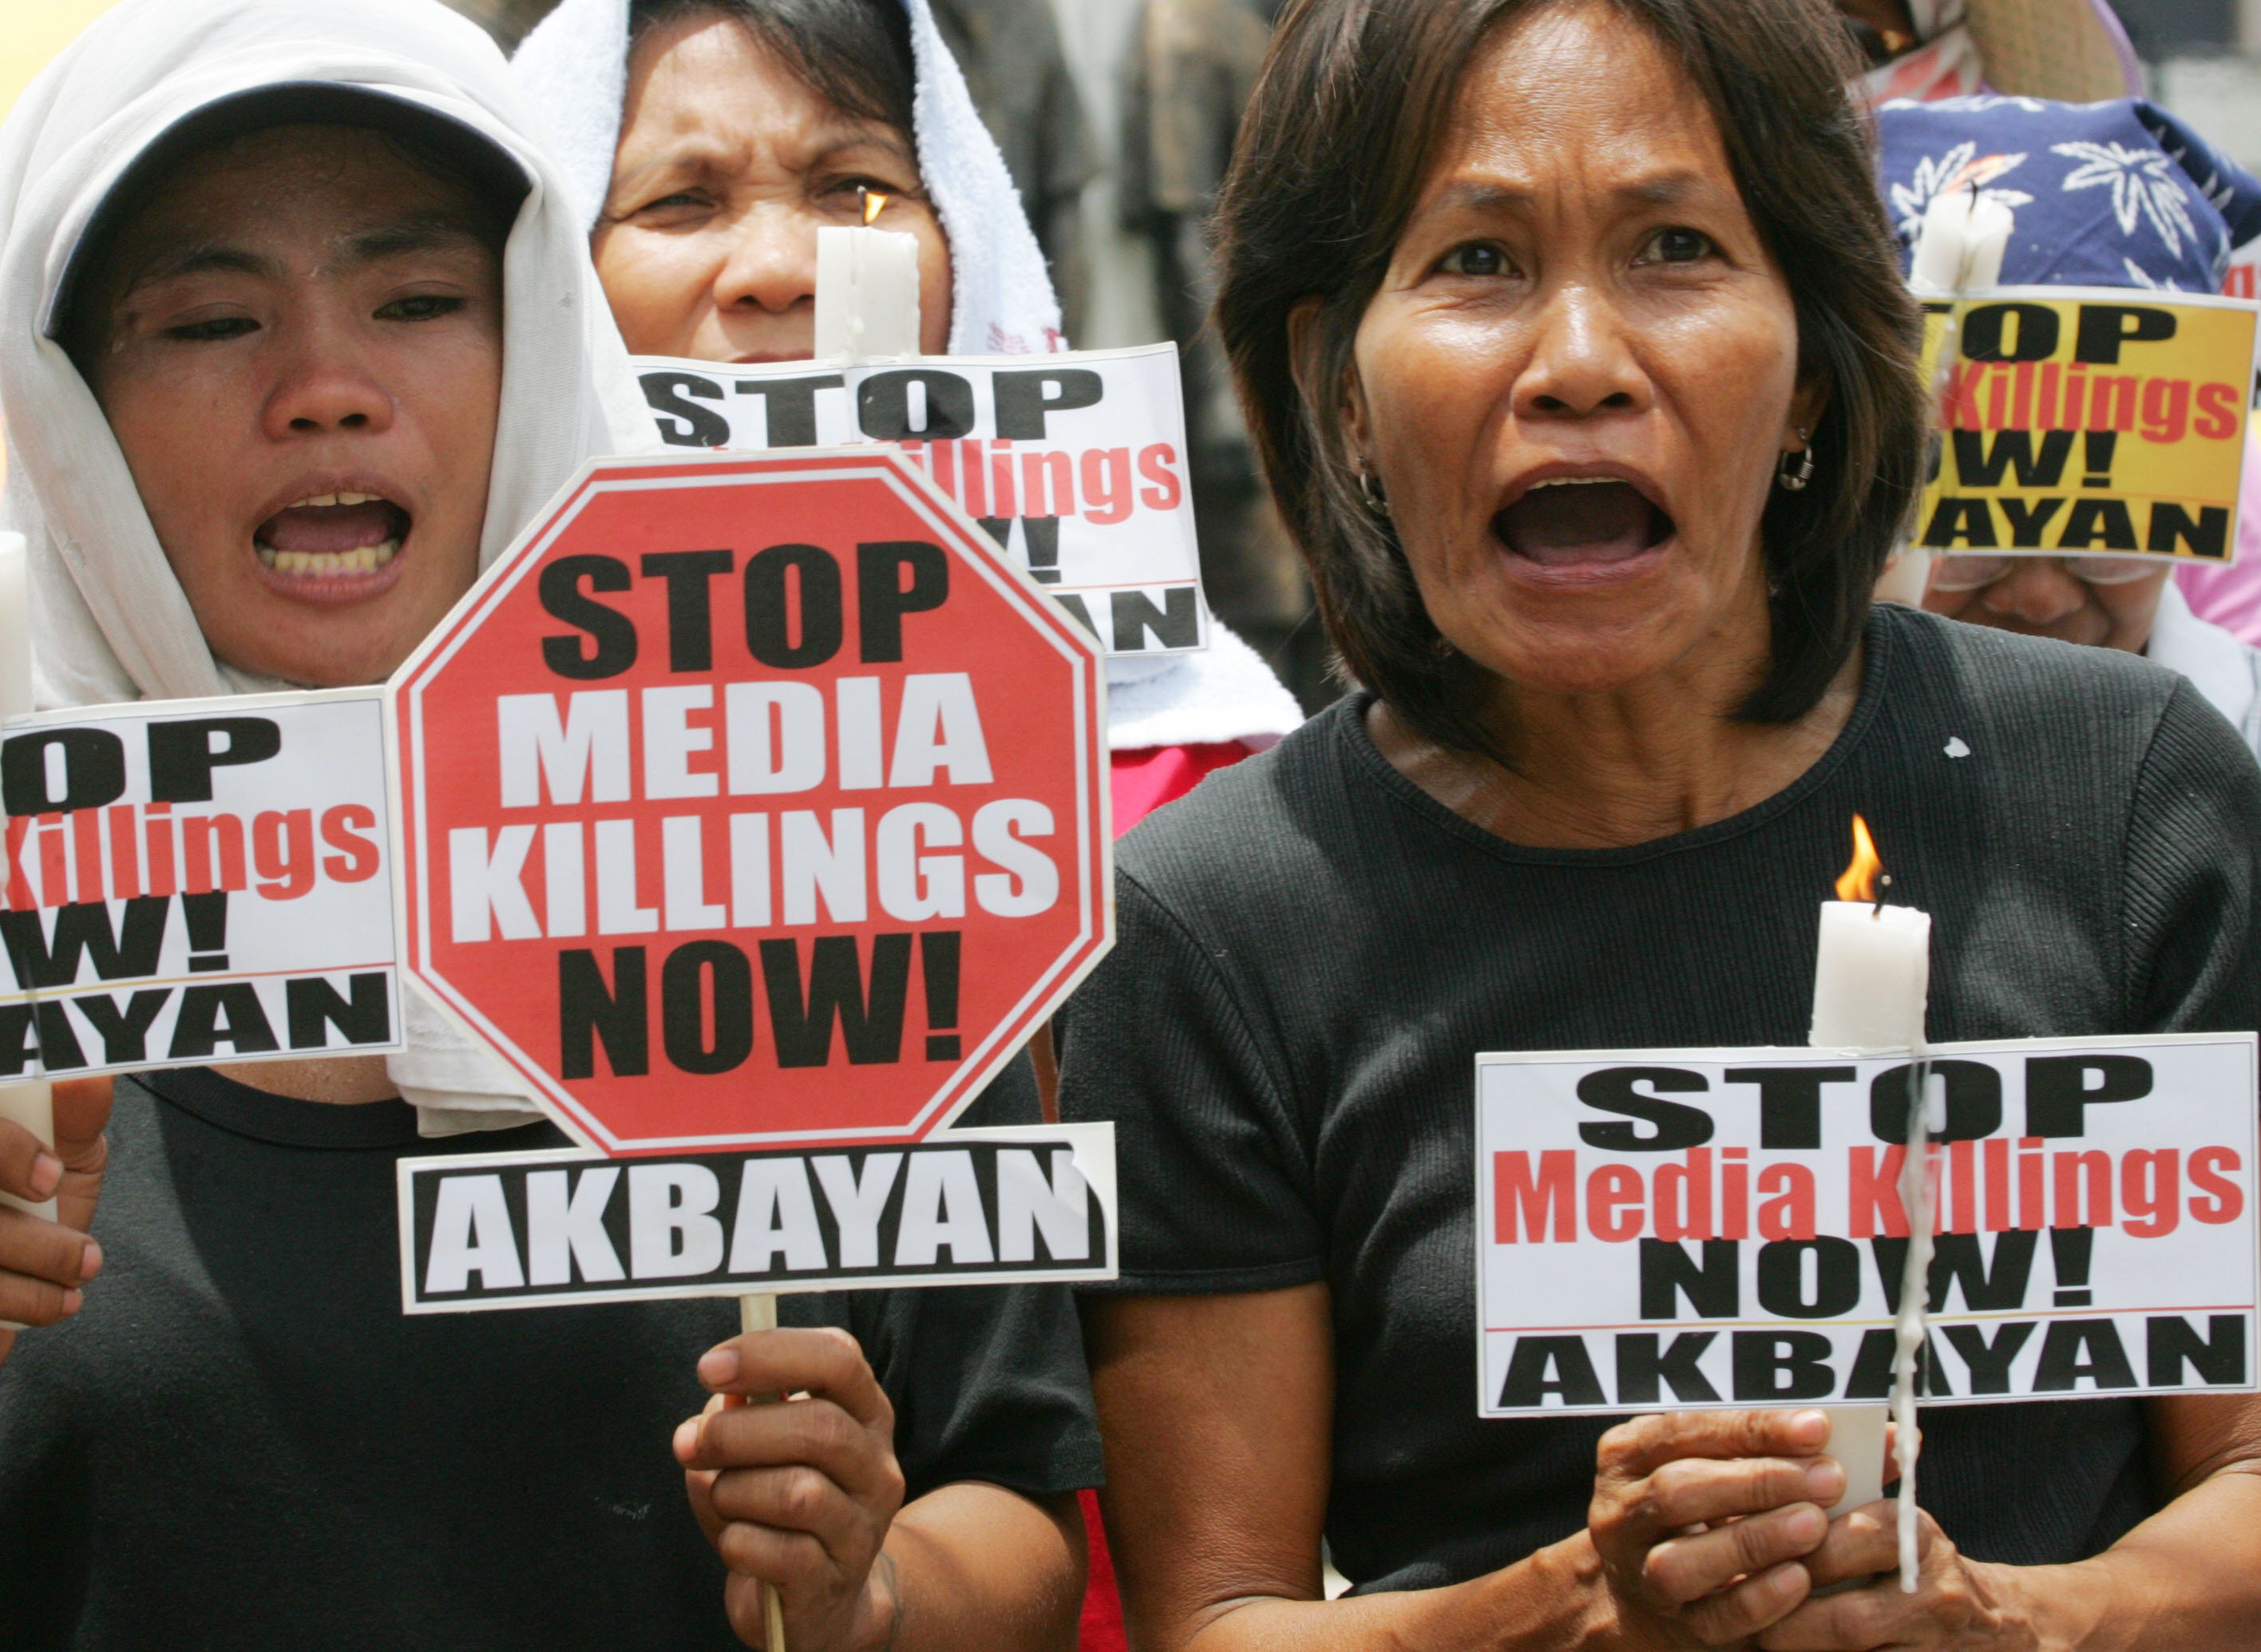 Protesters shout slogans during a rally at Quezon city, the Philippines, in 2006, to protest spate of killings of left-wing activists and journalists in the country. (AP Photo/Bullit Marquez)